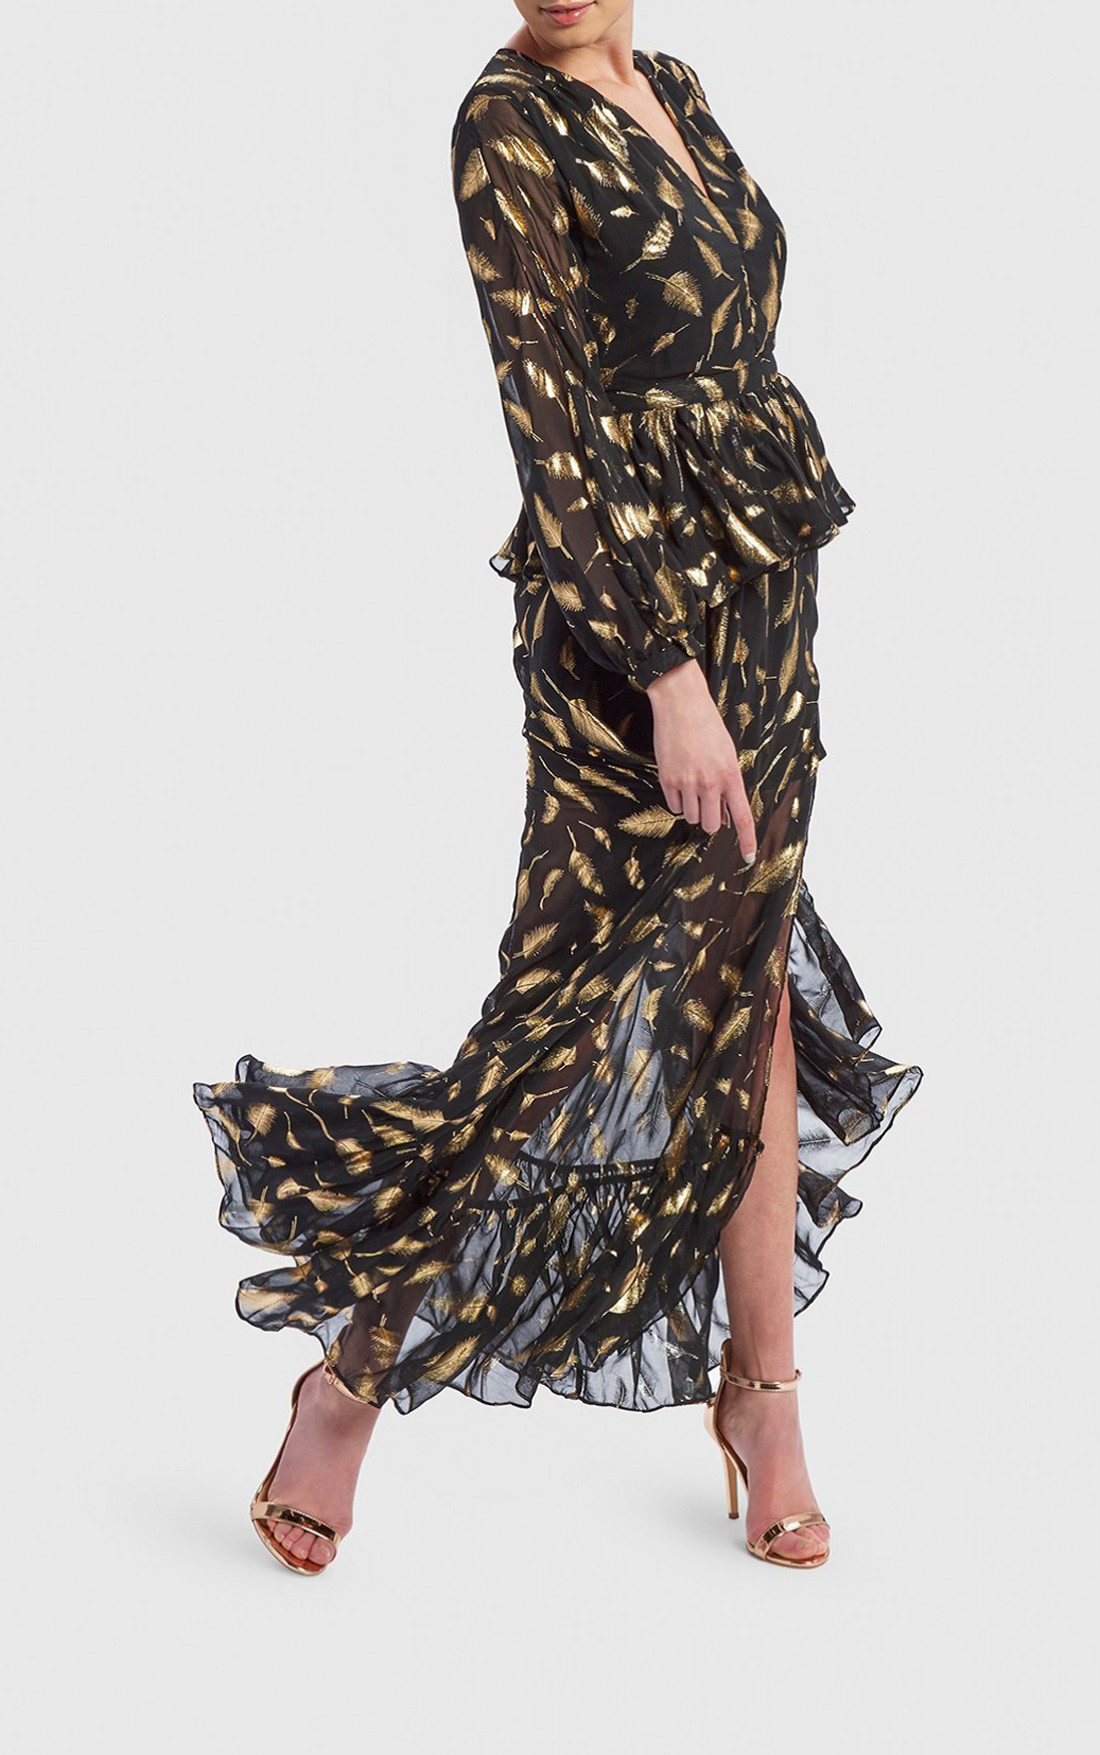 Forever Unique - Black Dress with Gold Leaves (DF18149)